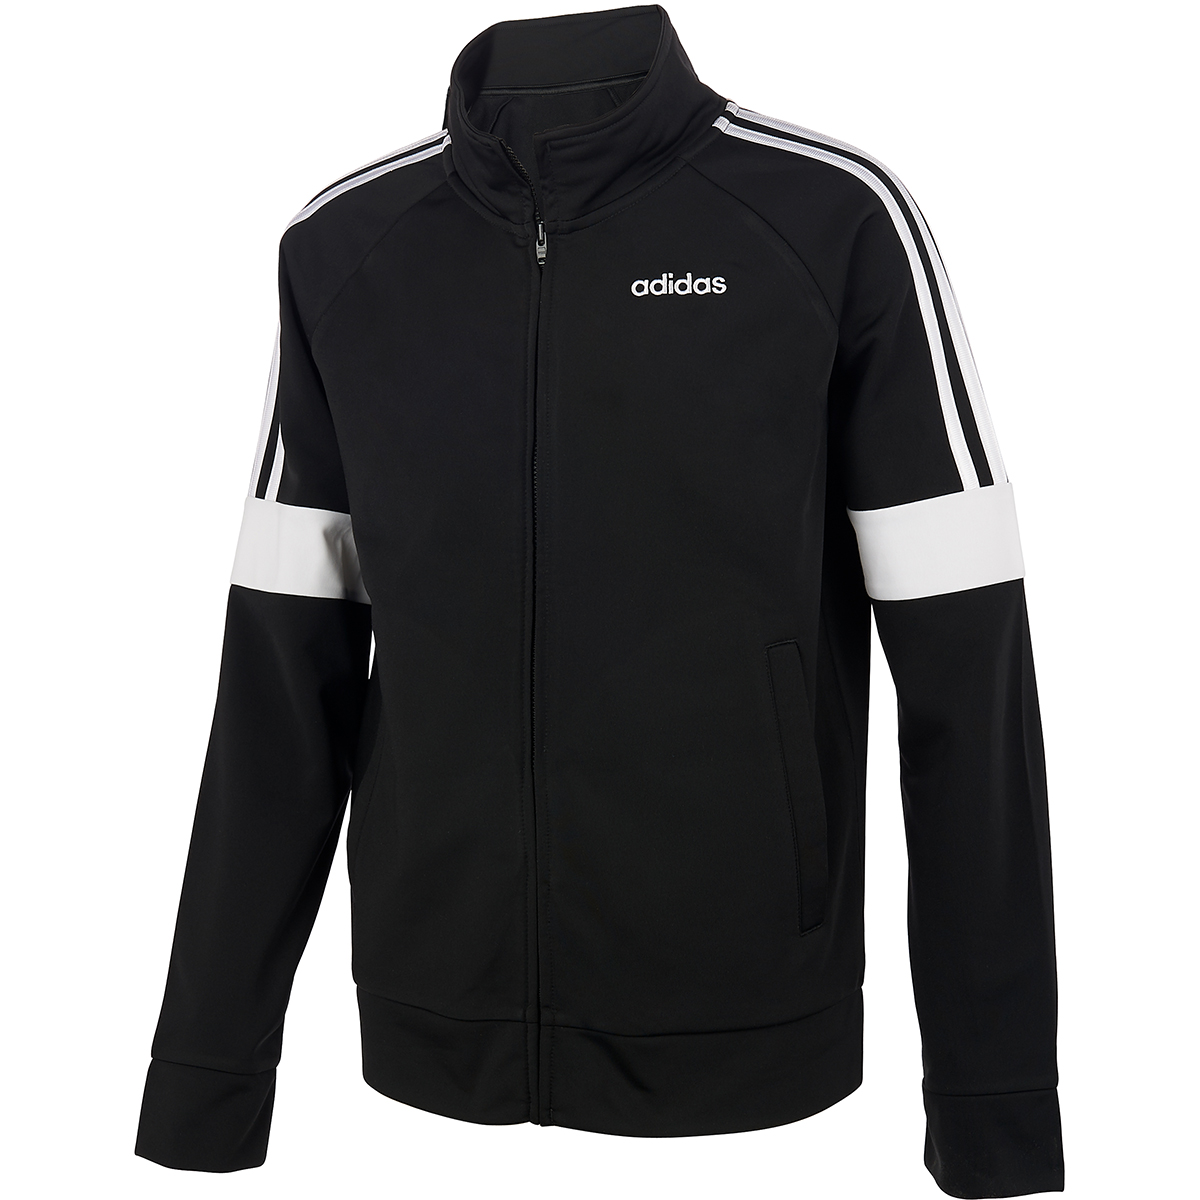 Adidas Boys' 8-20 Event Jacket - Black, XL